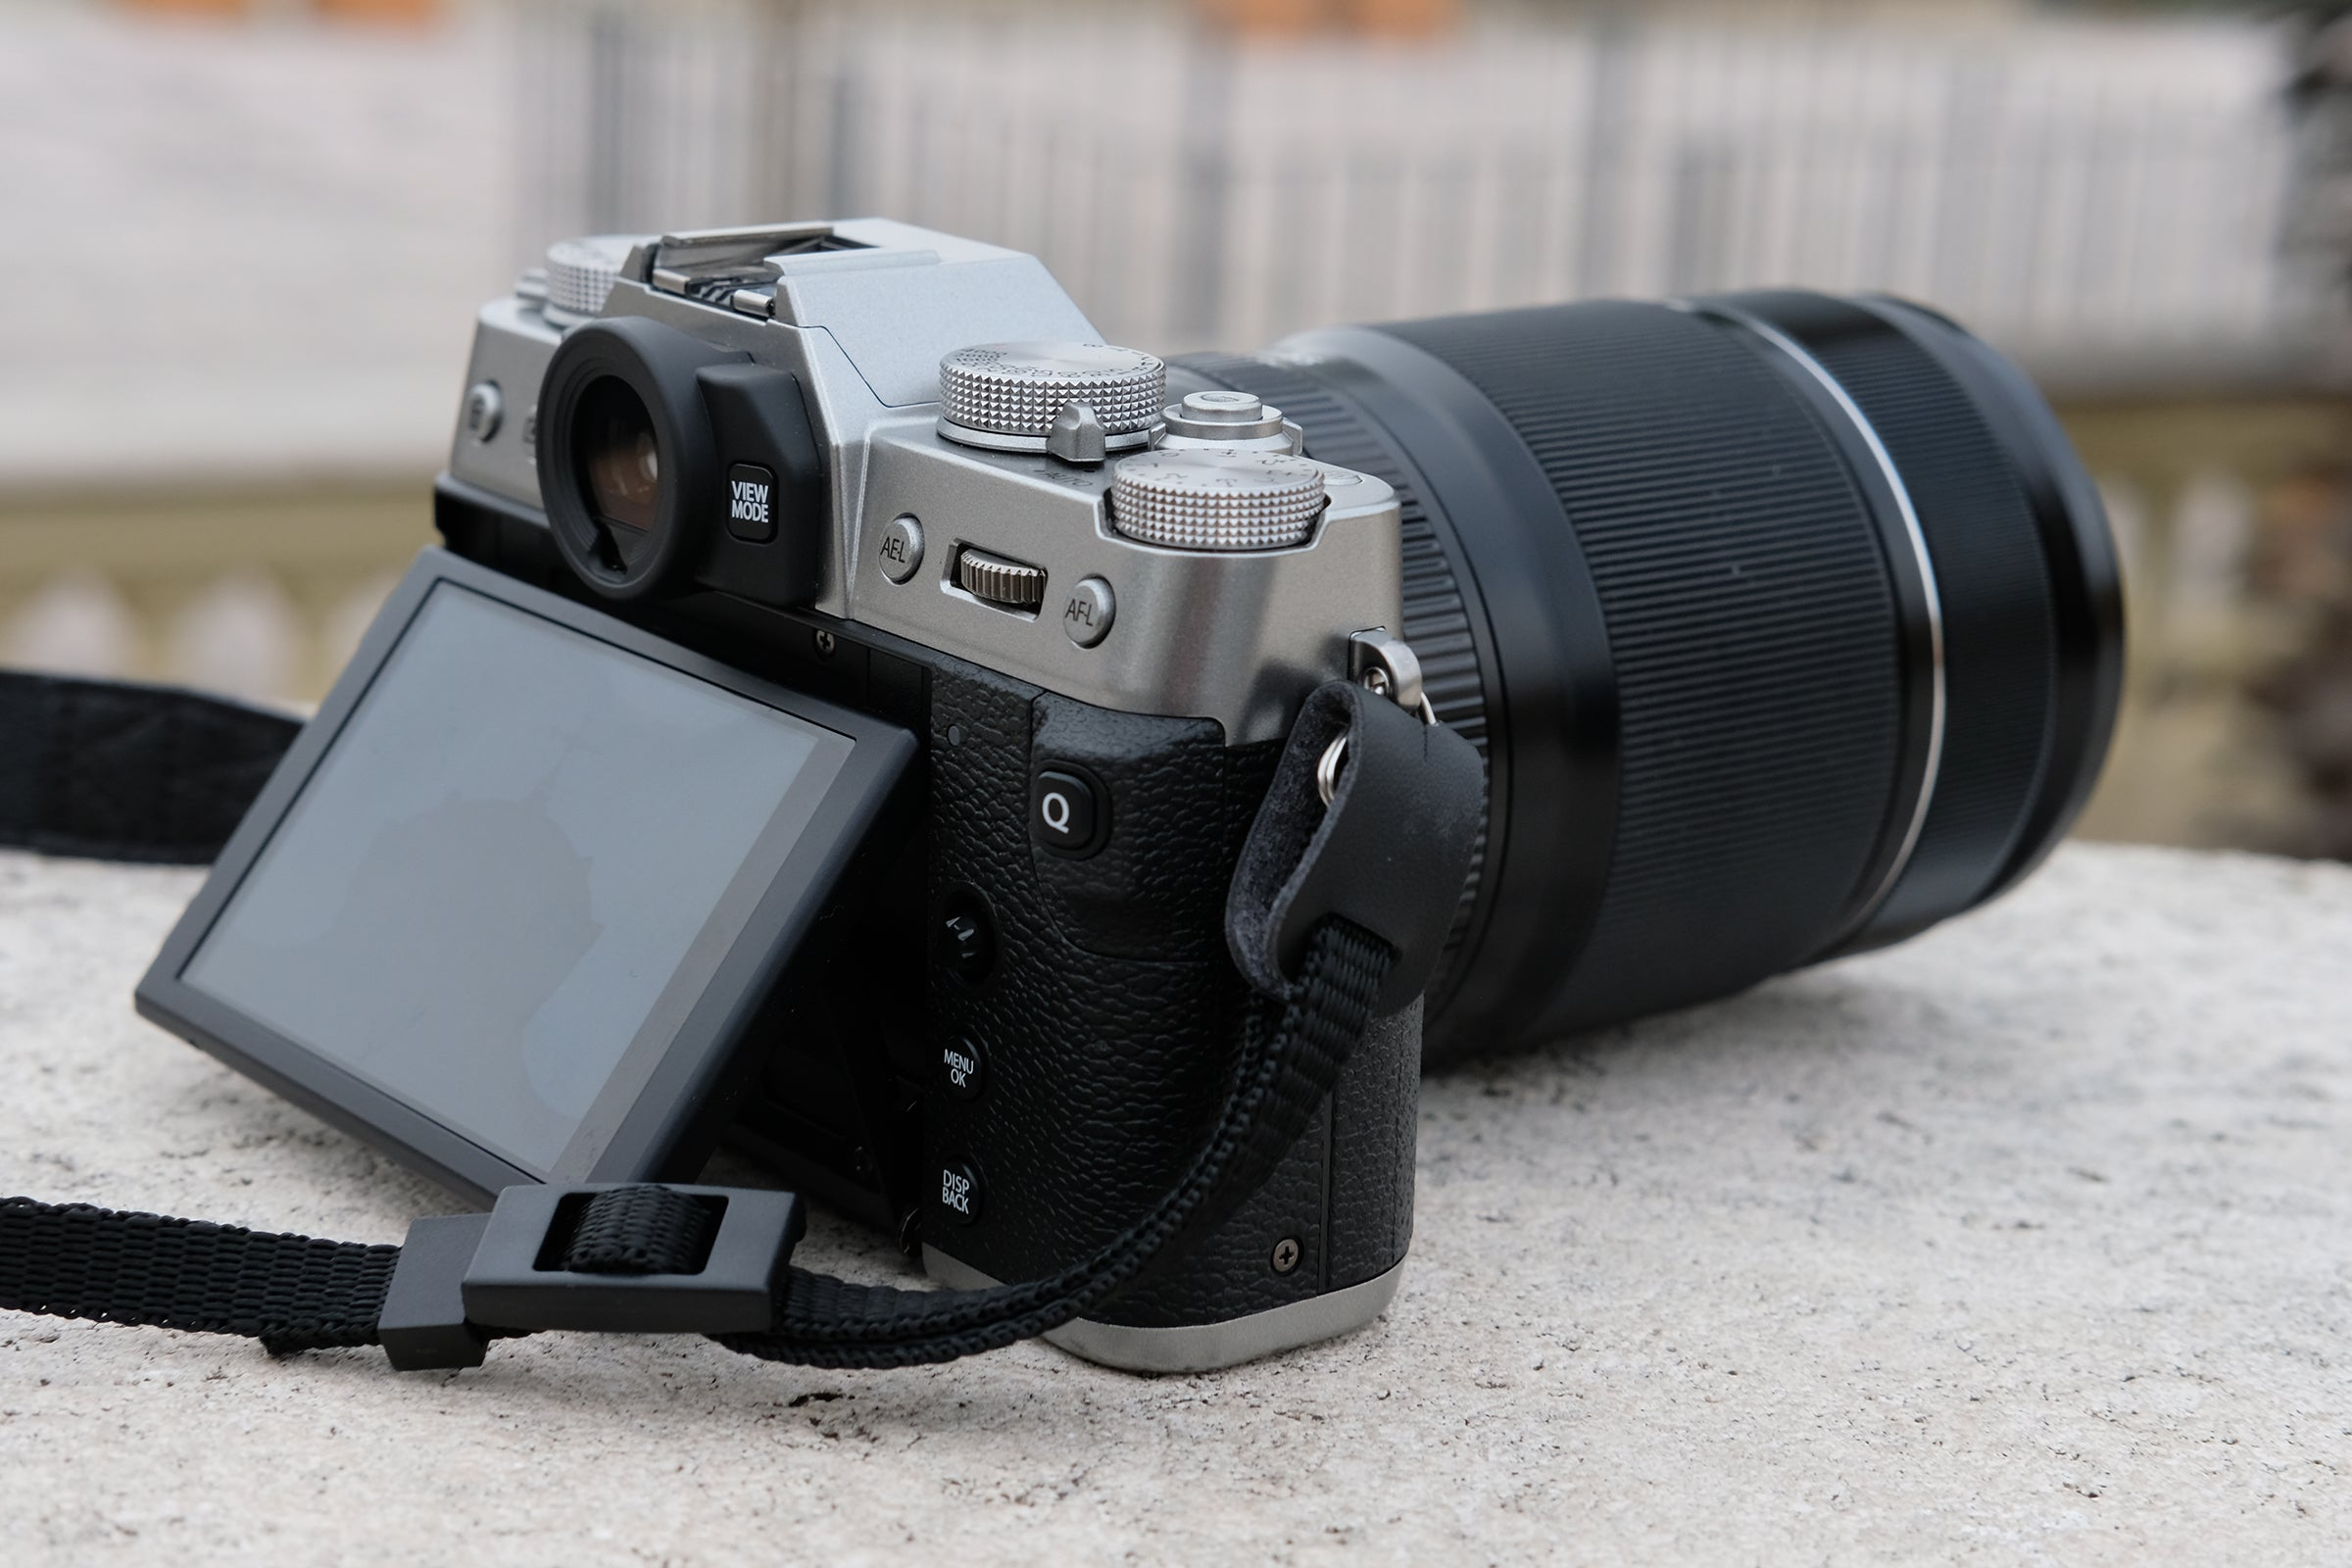 Fujifilm X-T30 review: the best sub-£1,000 camera?